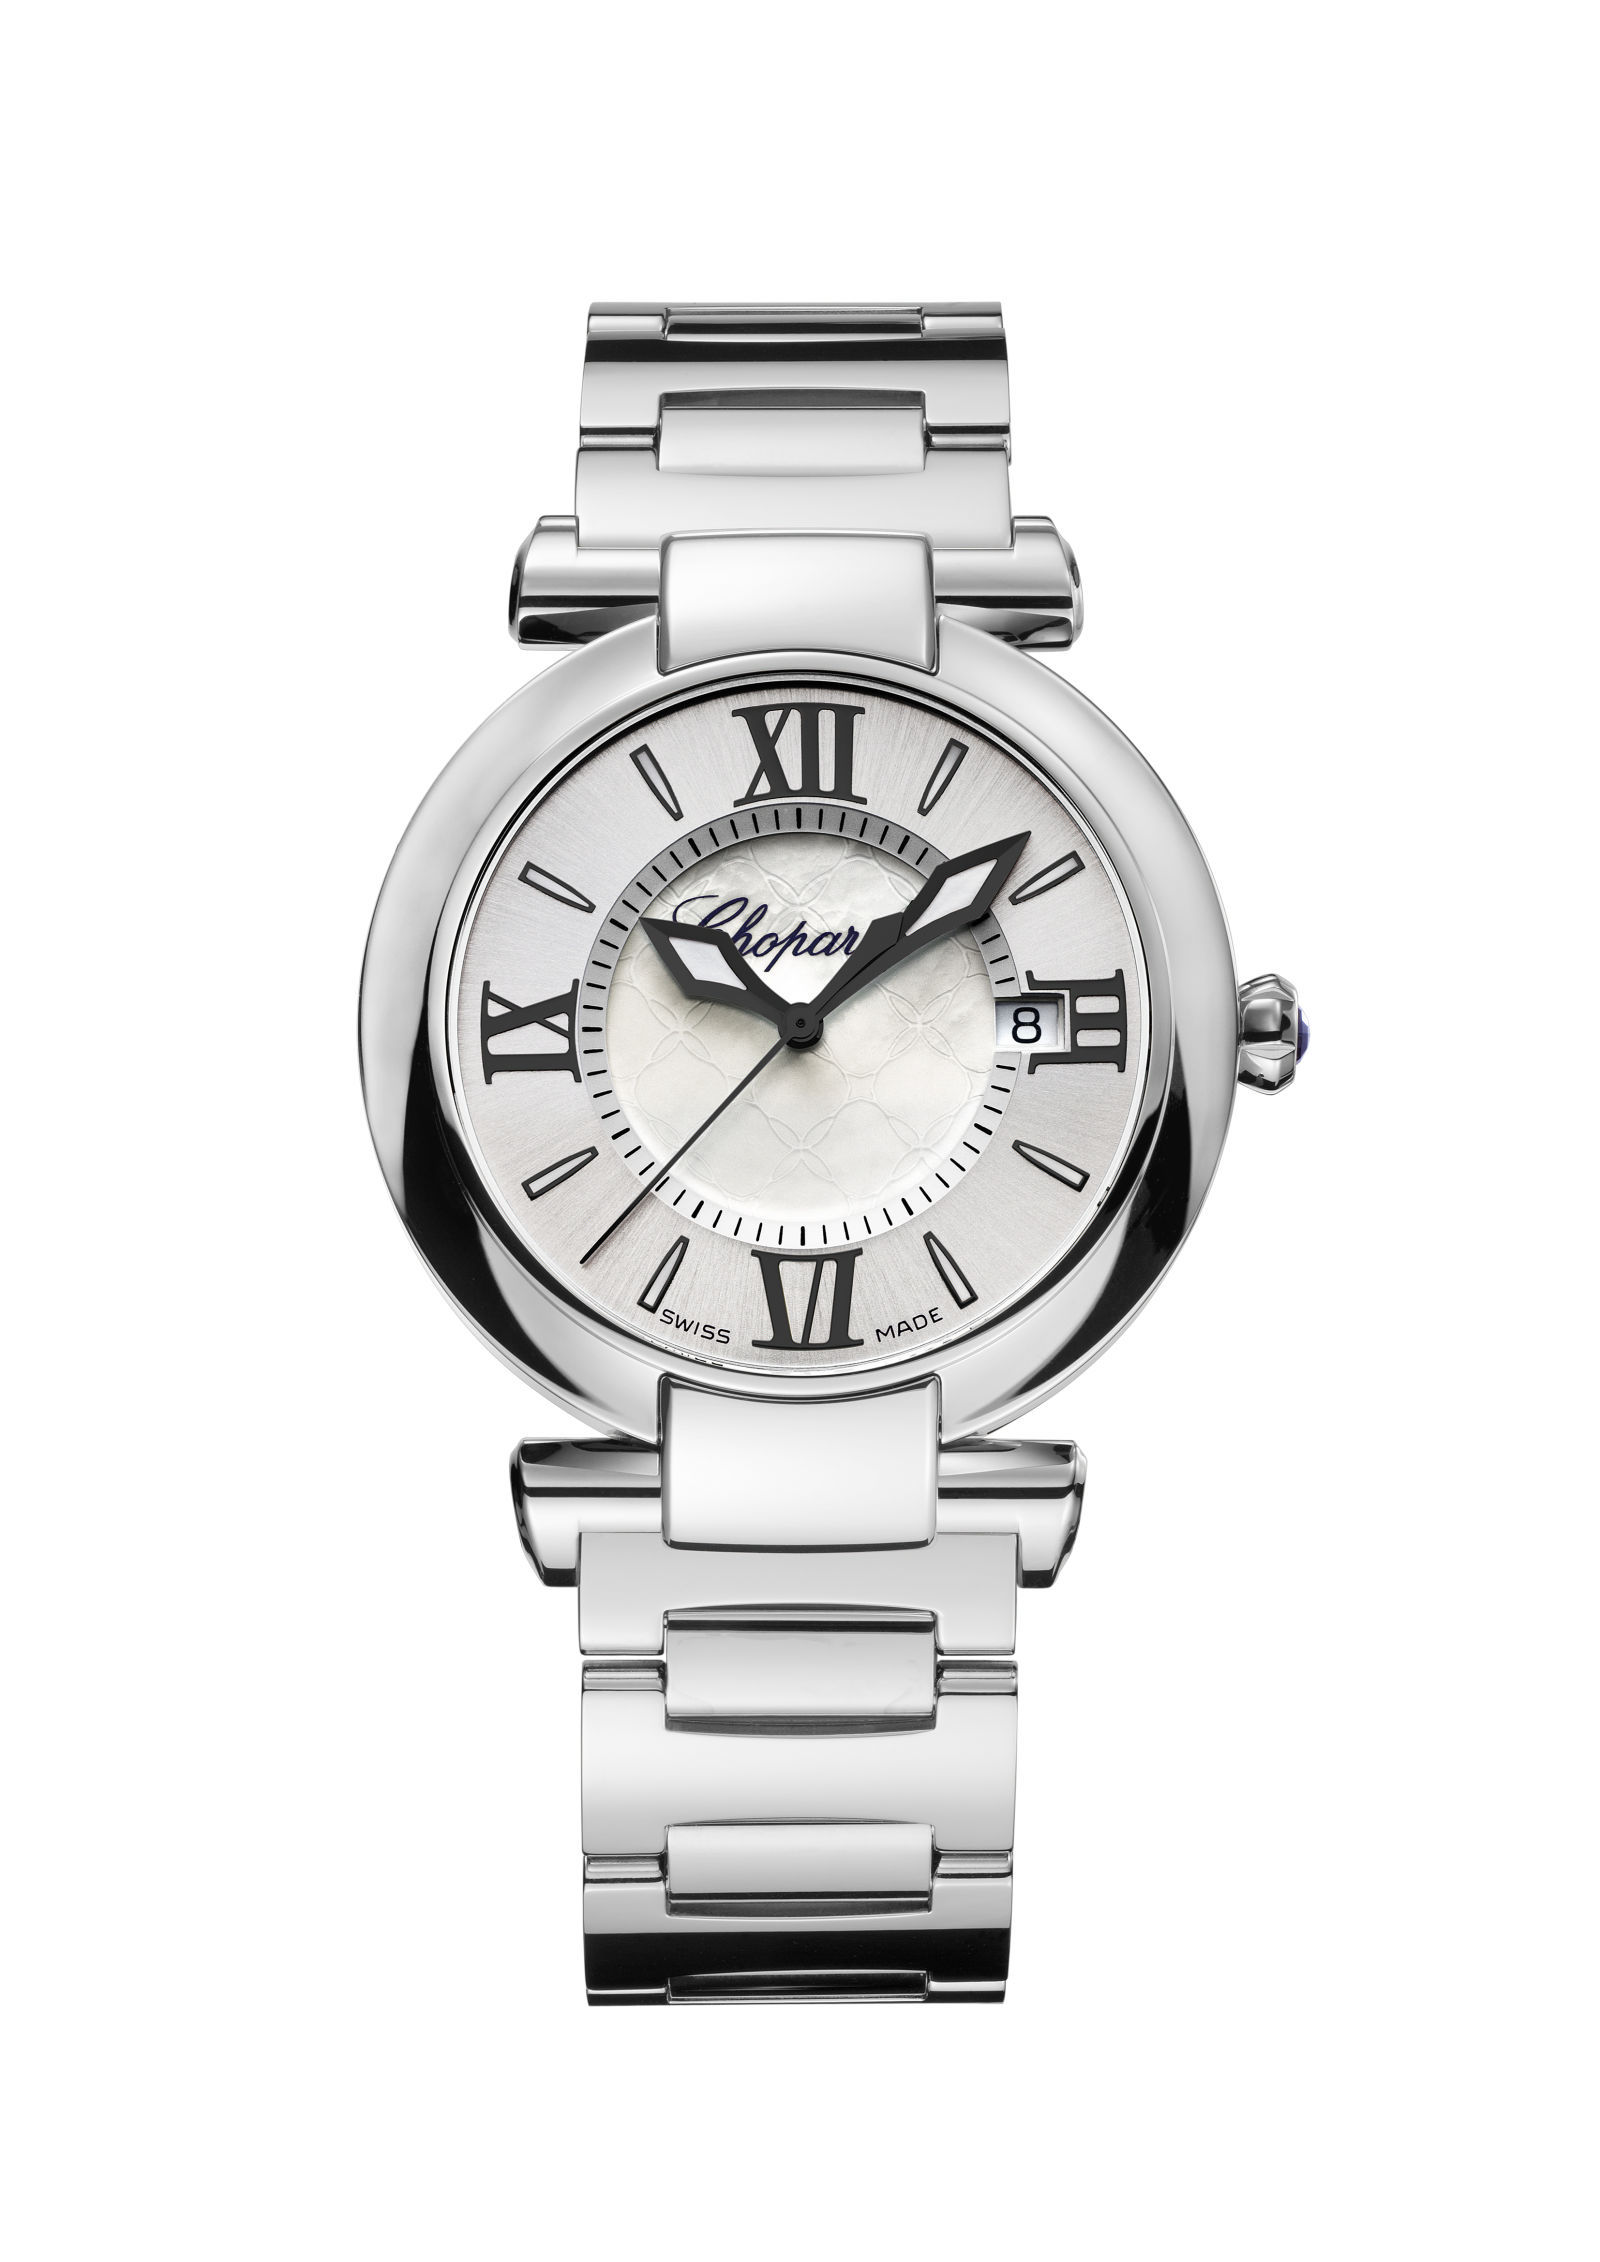 Chopard 36mm Imperiale Watch with Alligator & Stainless Steel Straps